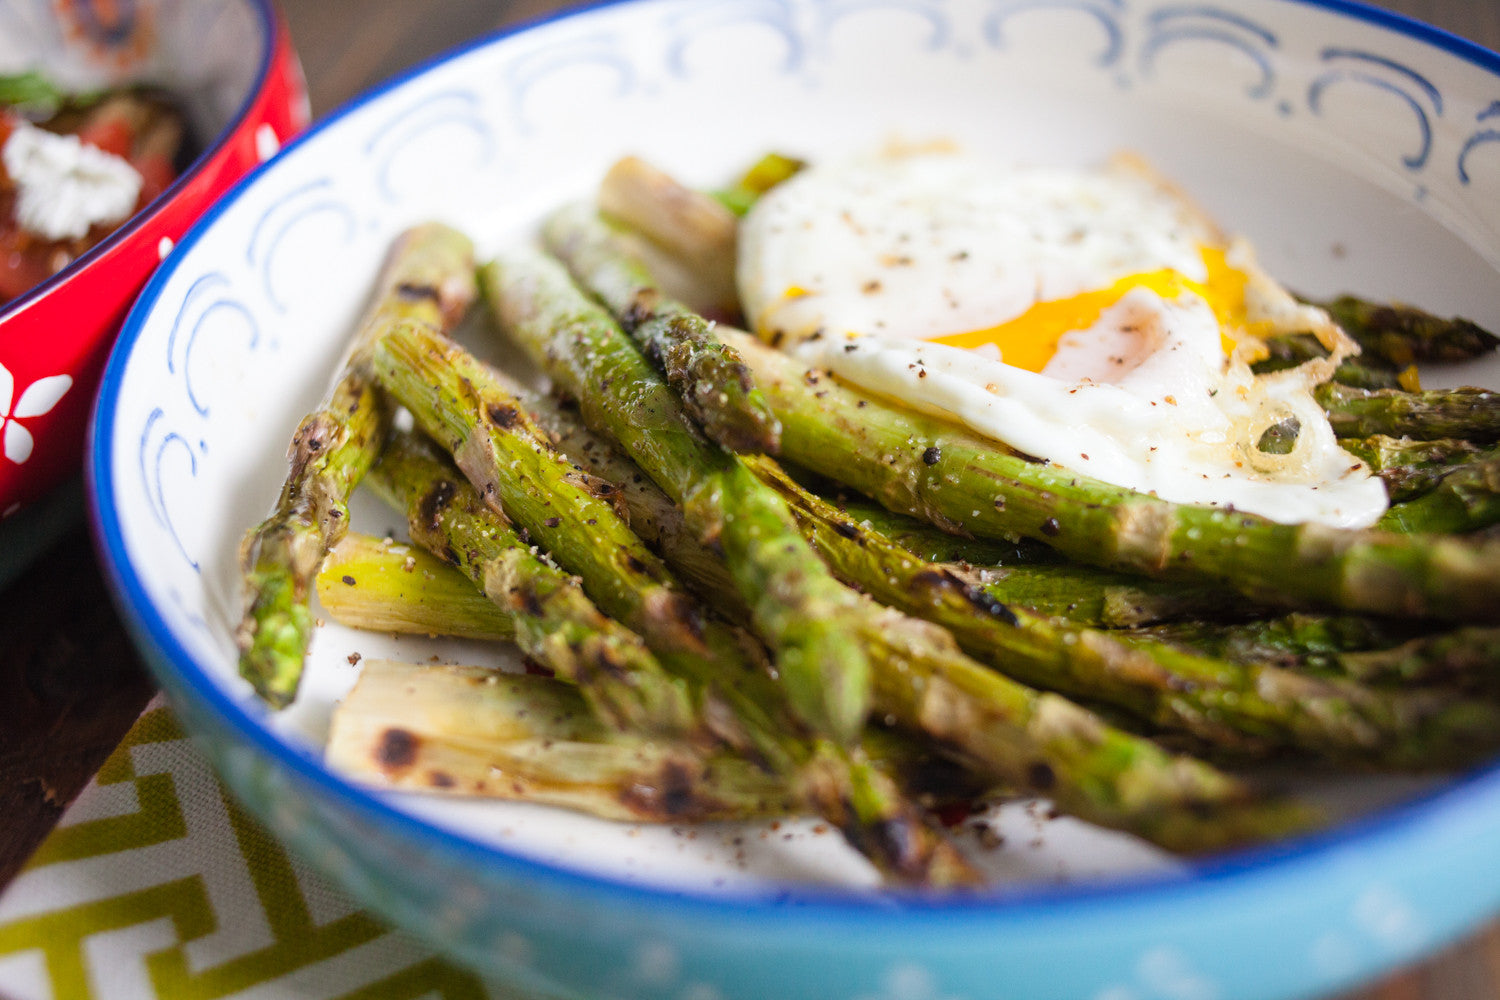 Summer Salad: Grilled Asparagus with Fried Egg